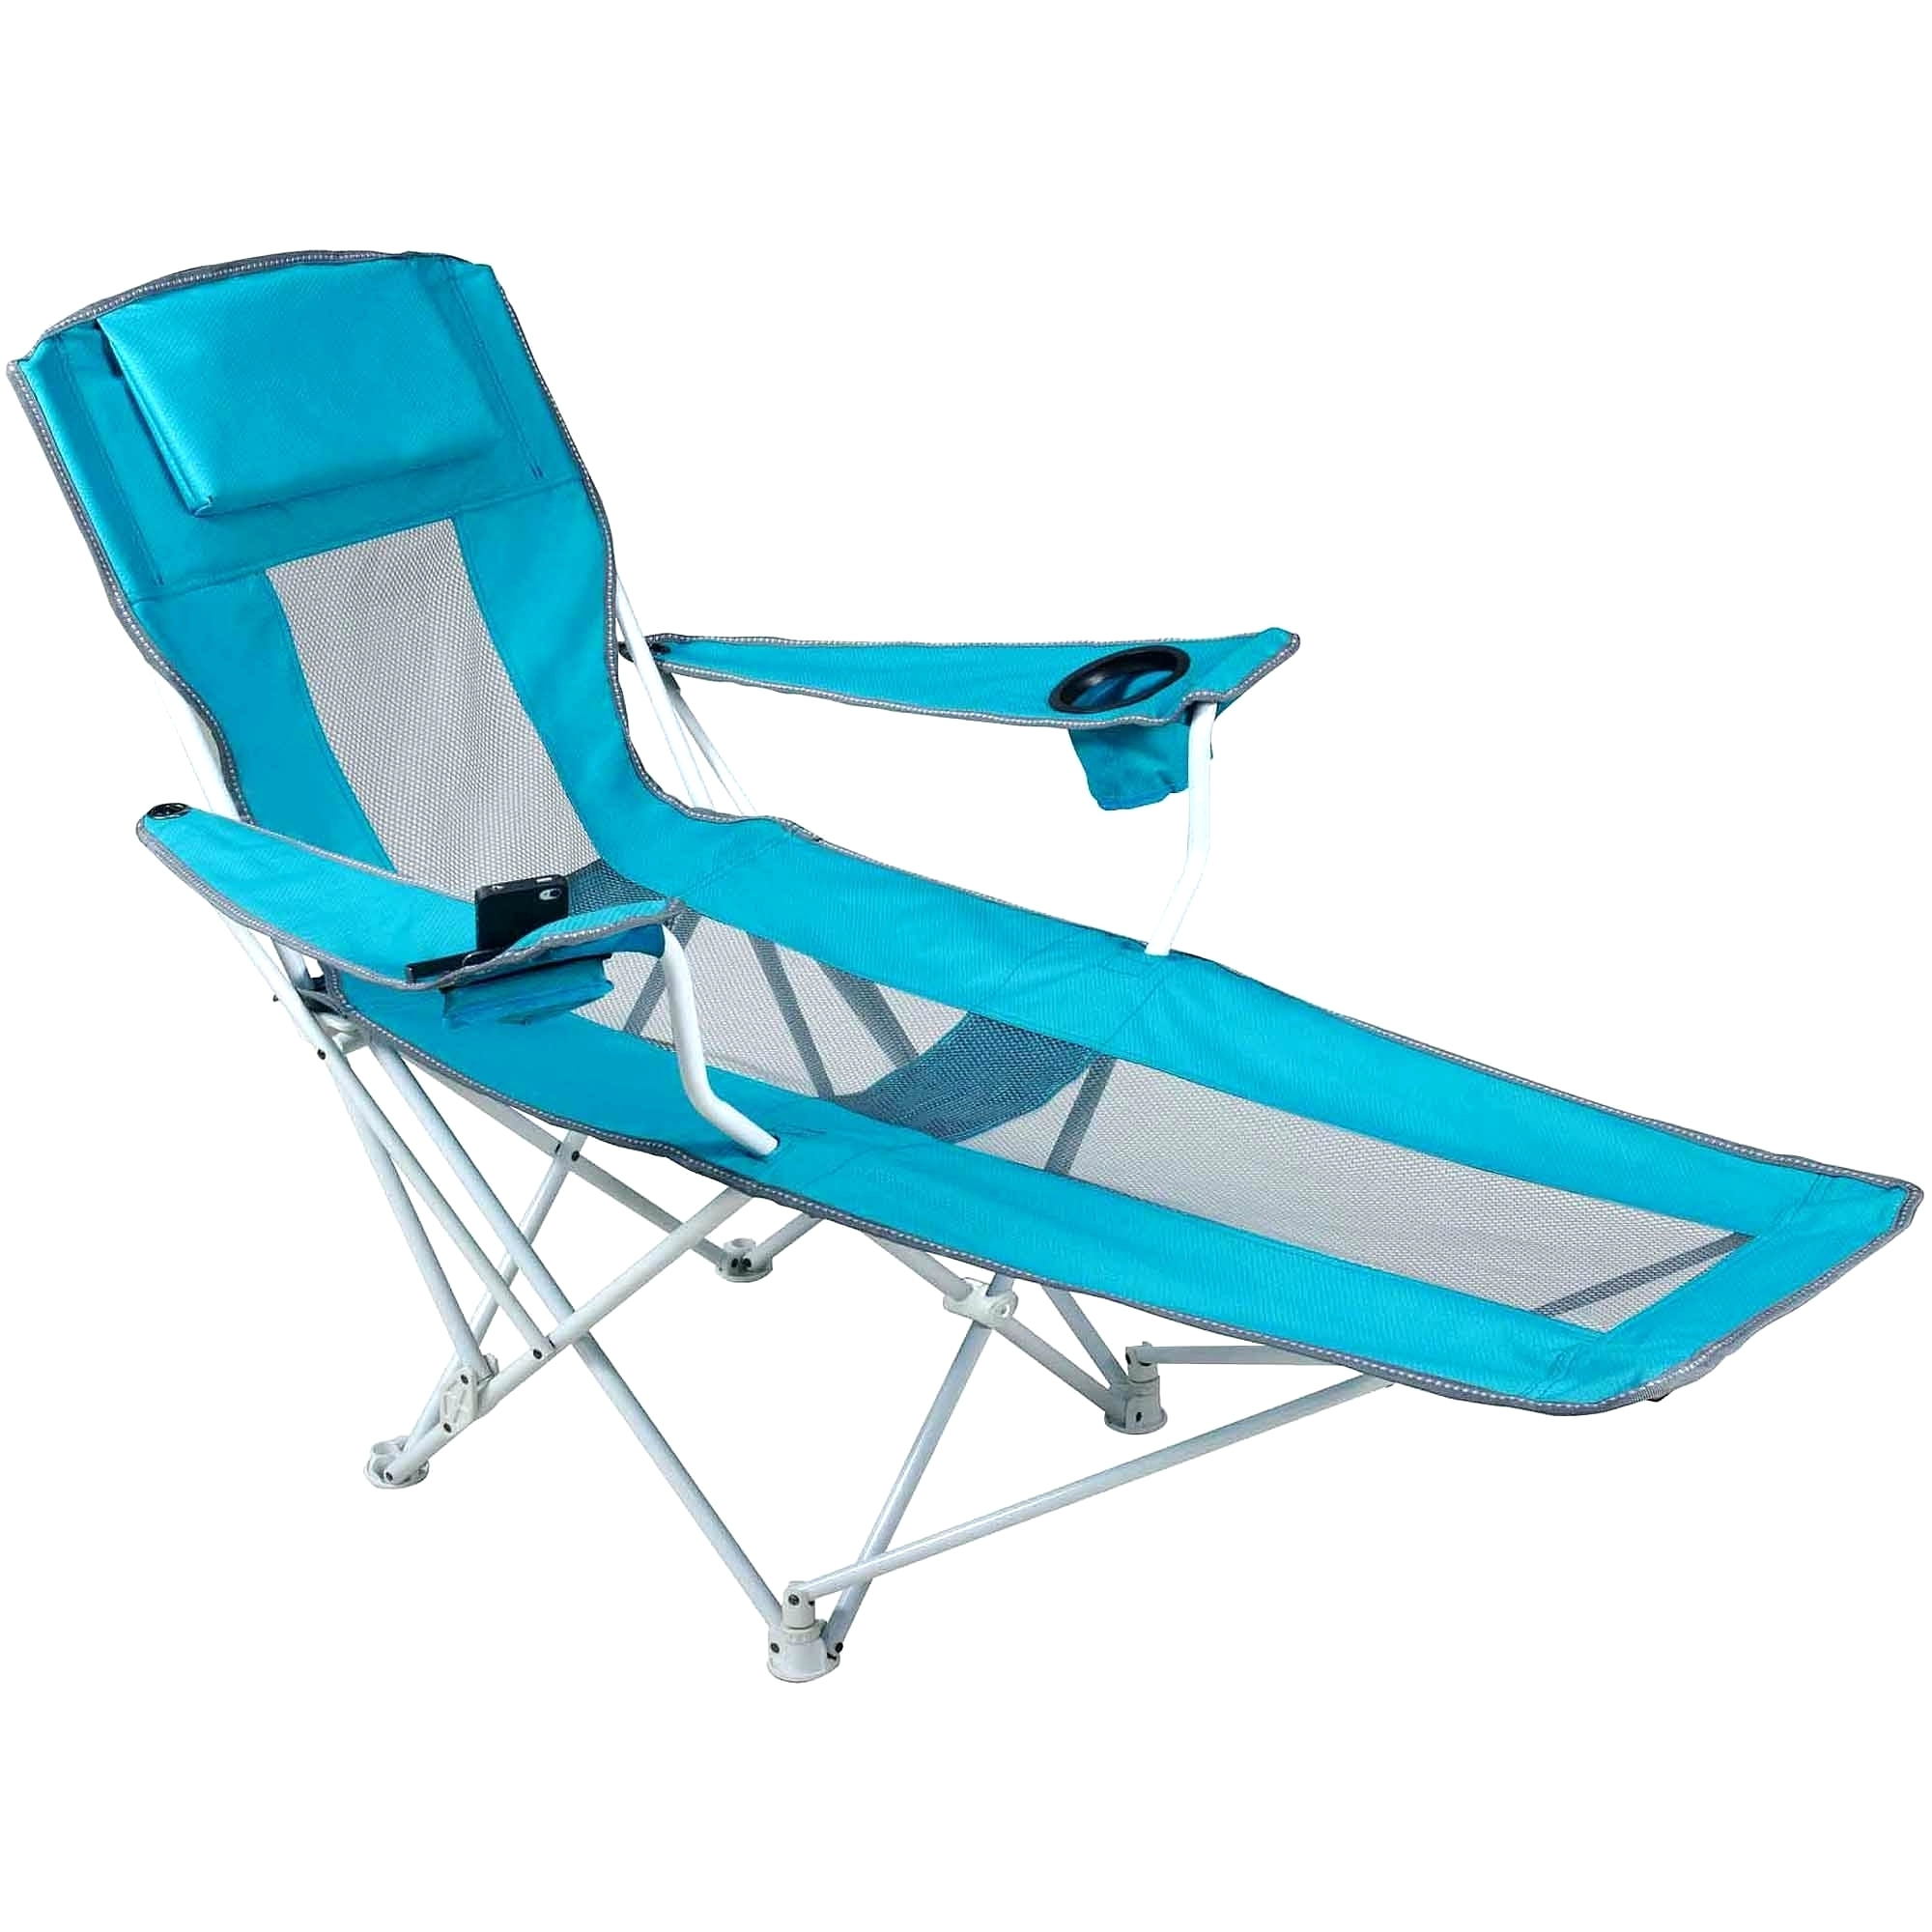 Folding Jelly Chaise Lounge Chair • Lounge Chairs Ideas Intended For Newest Jelly Chaise Lounge Chairs (View 9 of 15)